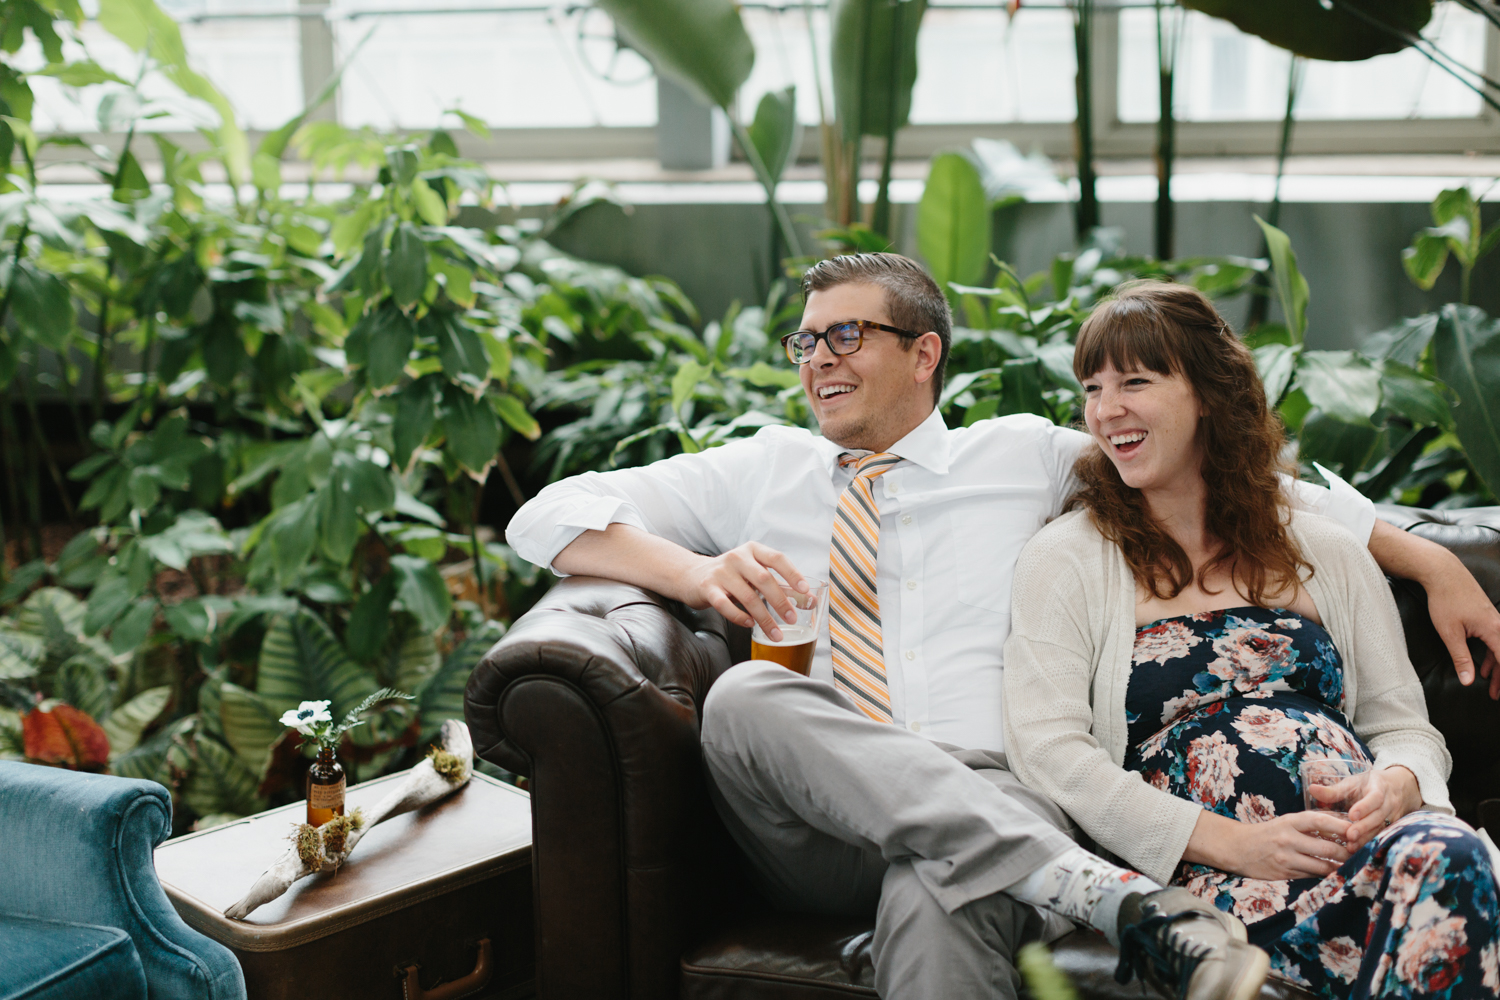 Chicago Garfield Park Conservatory Wedding by Northern Michigan Photographer Mae Stier-073.jpg